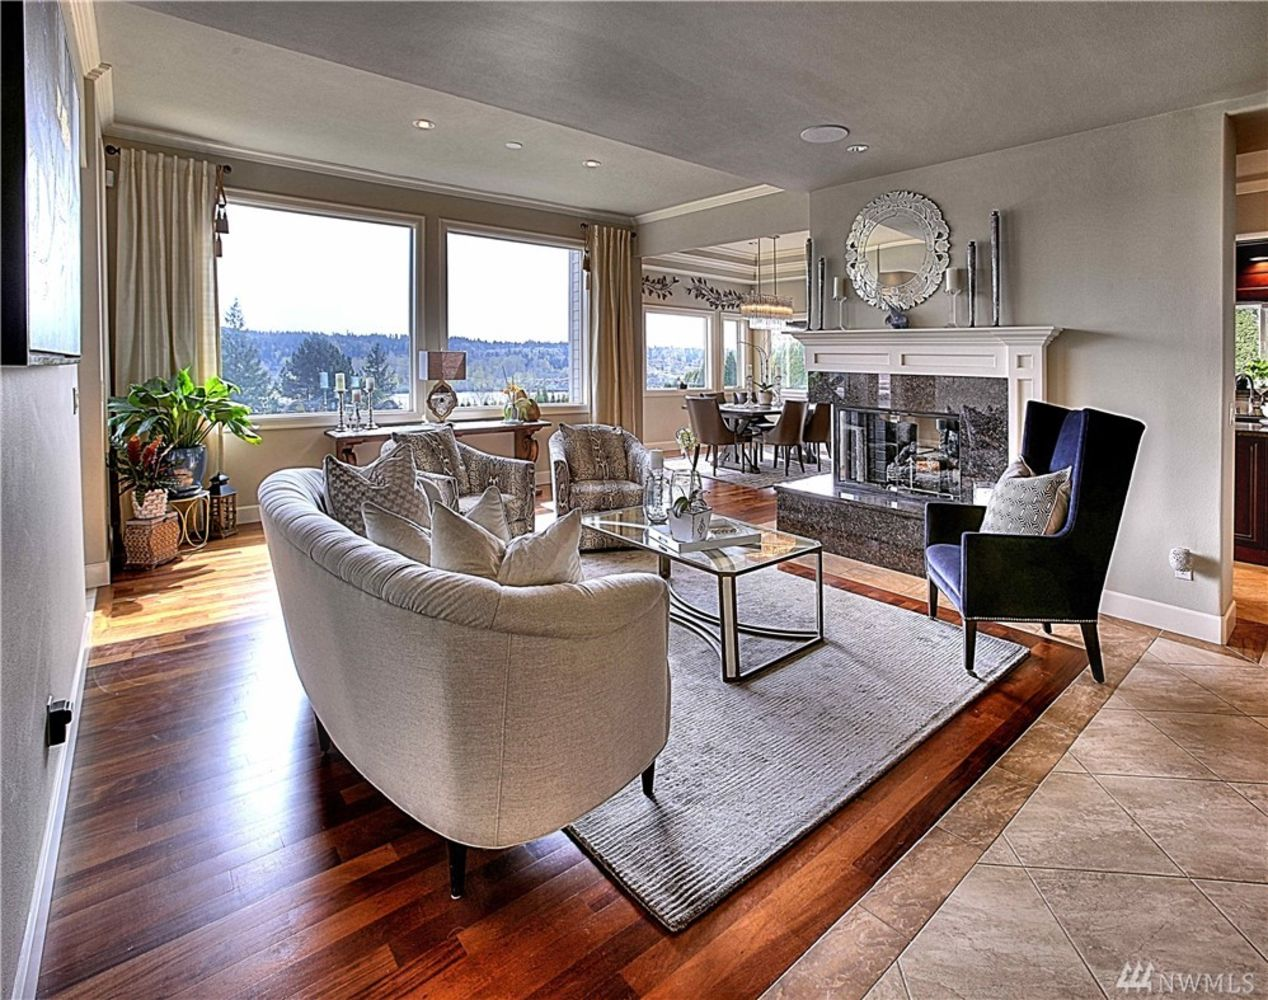 One-of-a-Kind 6-Bedroom Luxury View Home on Mercer Island